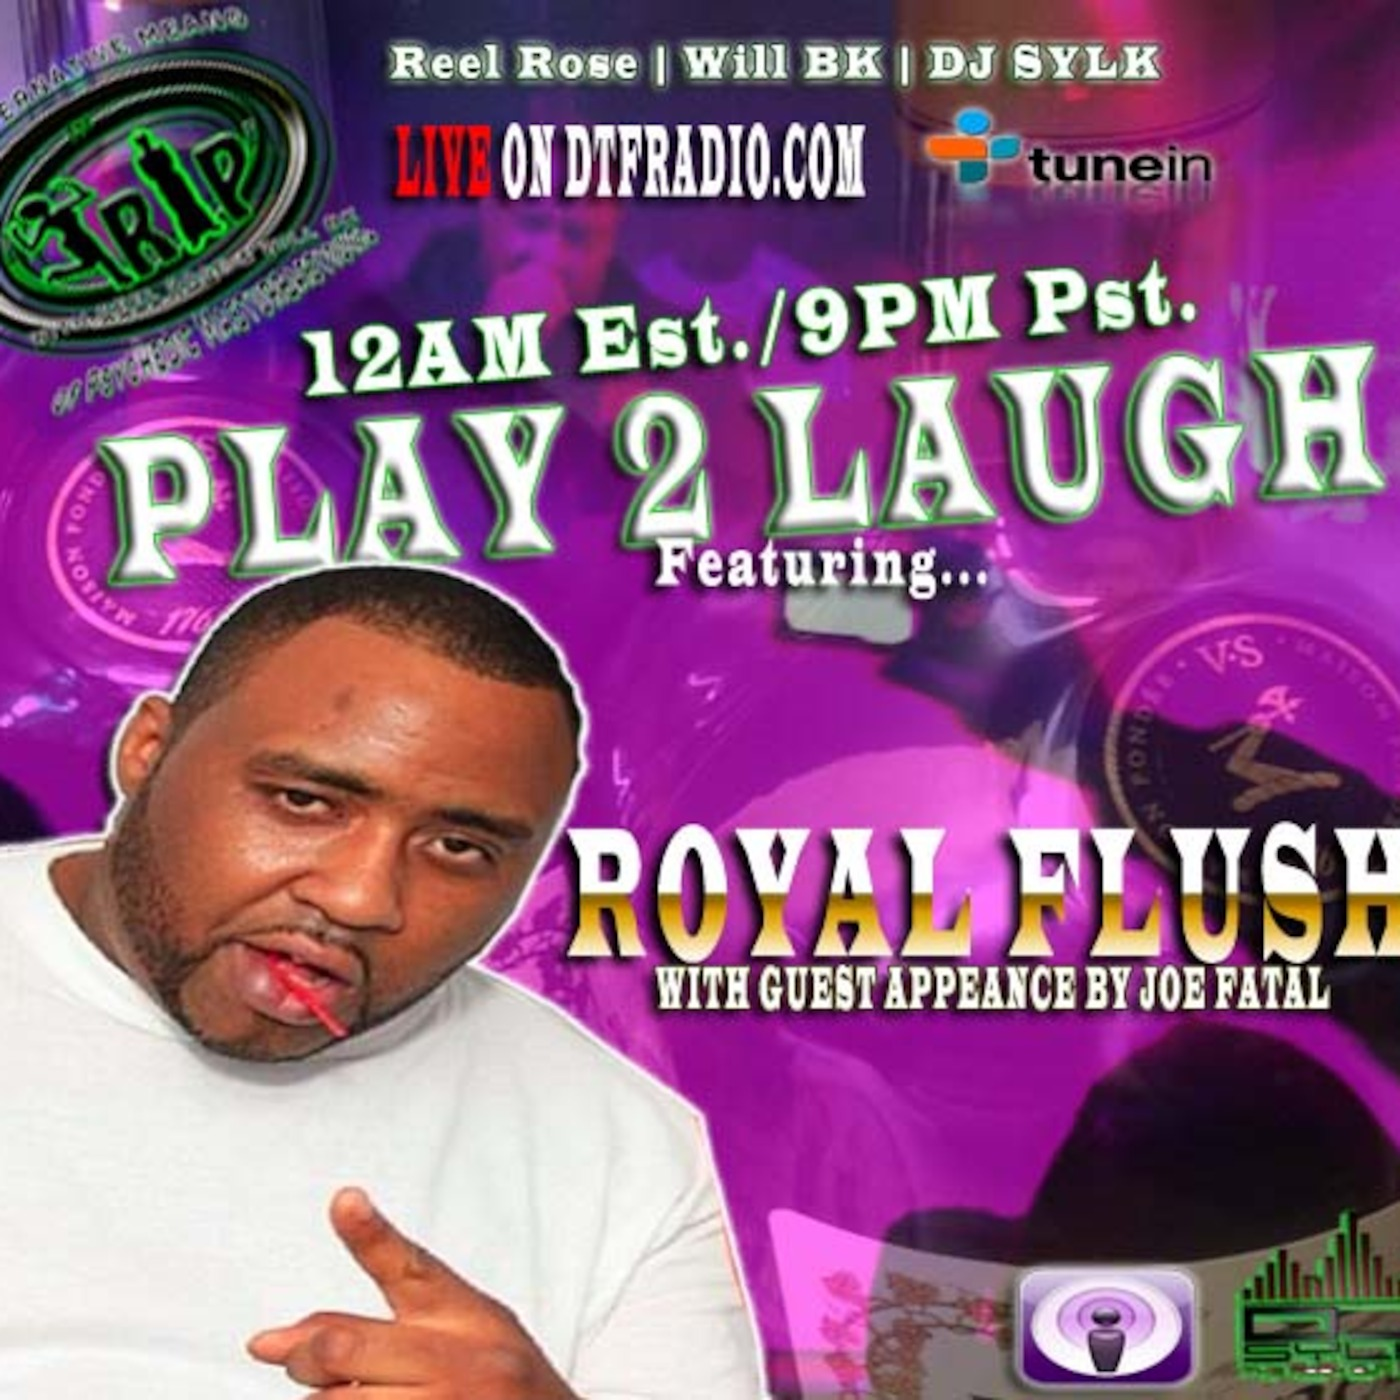 Episode 7-ROYAL FLUSH & JOE FATAL THE TRIP RADIO SHOW With